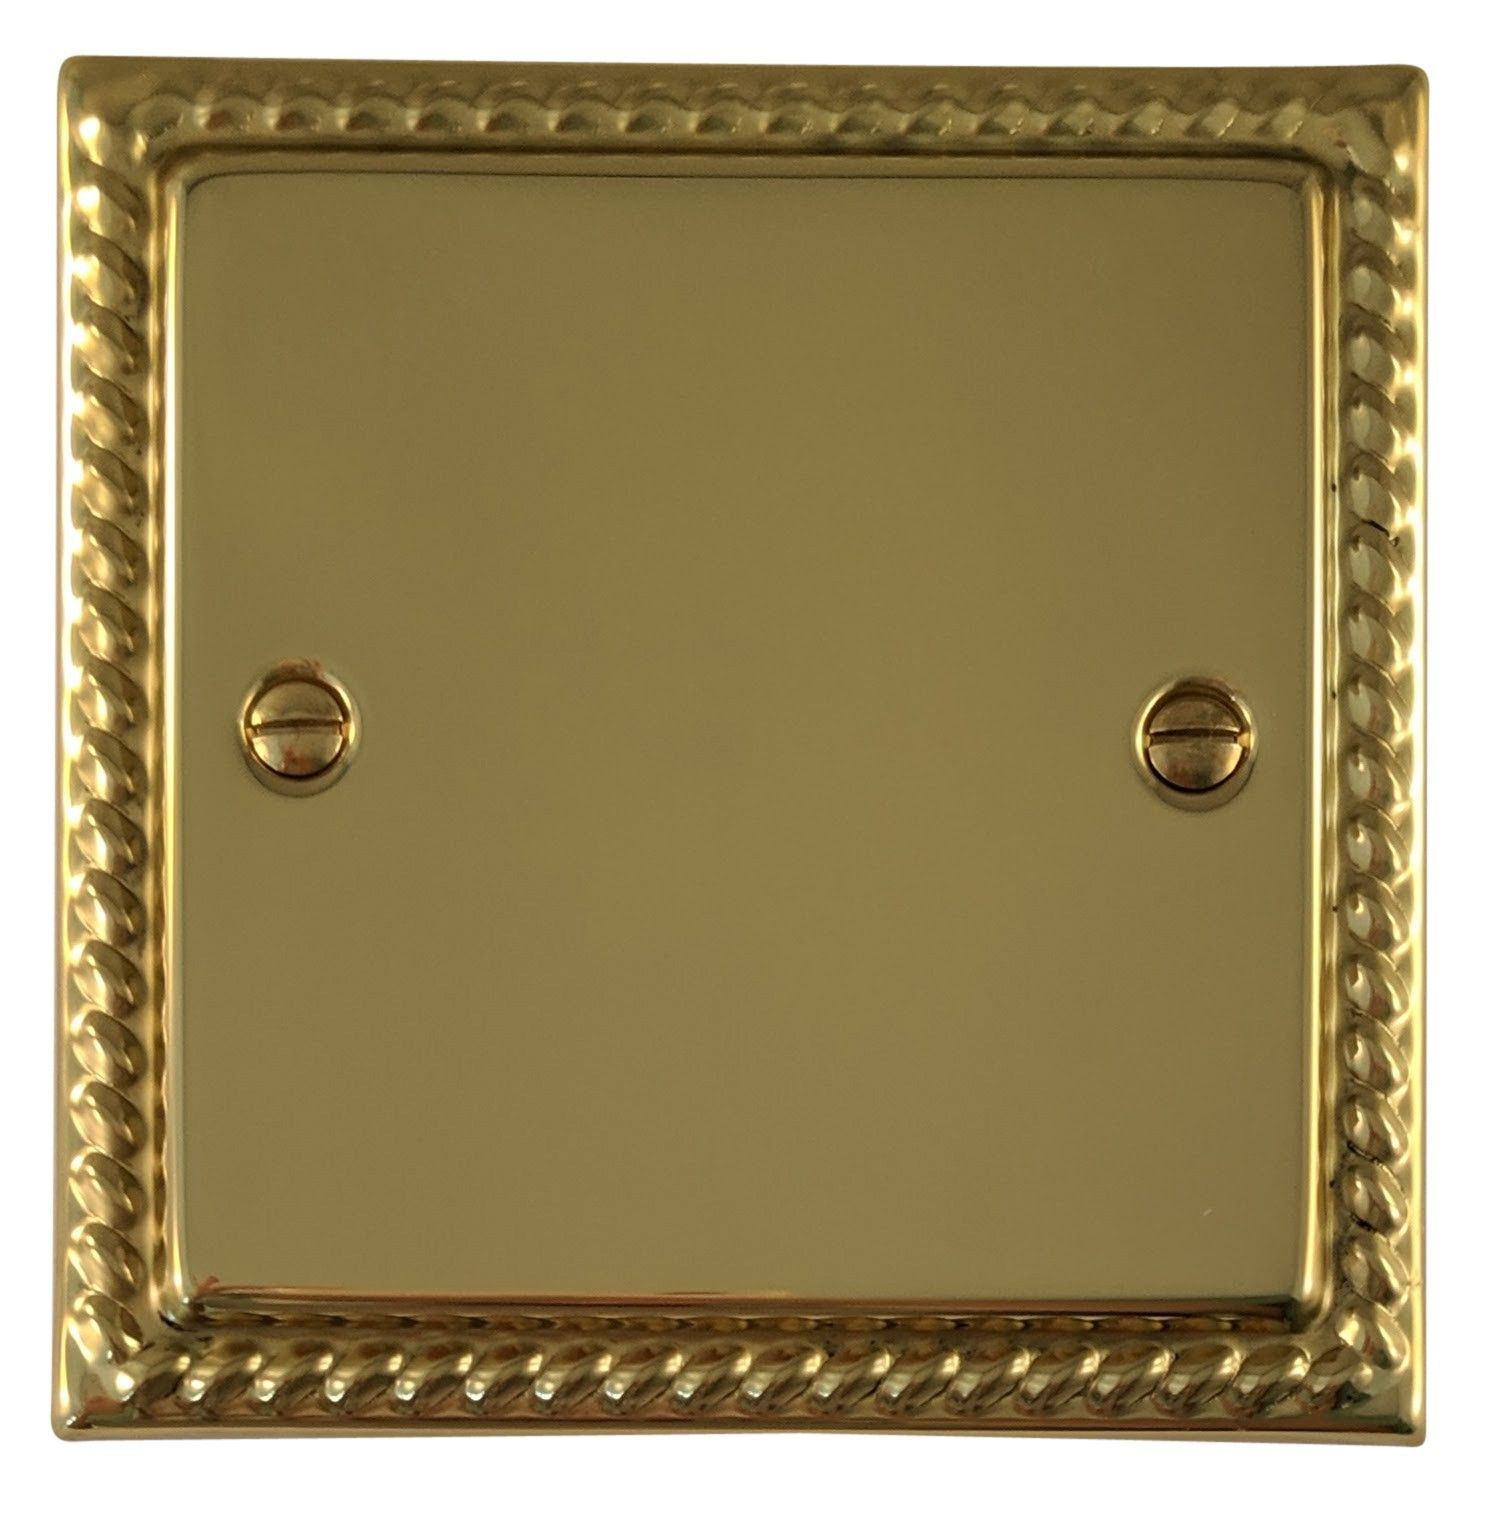 G&H MB31 Monarch Roped Polished Brass 1 Gang Single Blank Plate